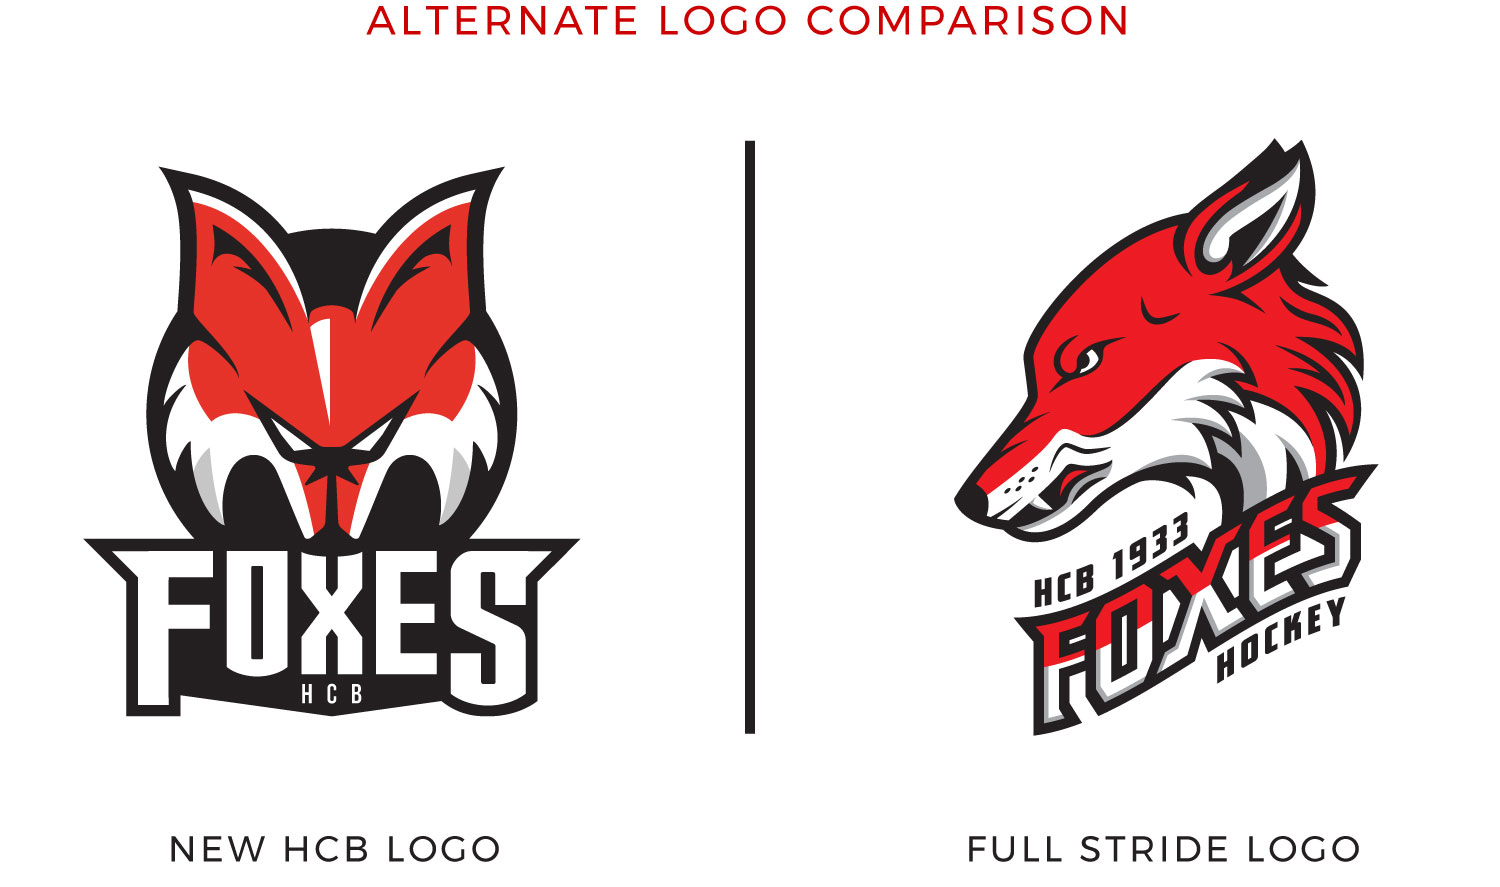 HCB_Foxes_Logo-Comparison-Alternate.jpg